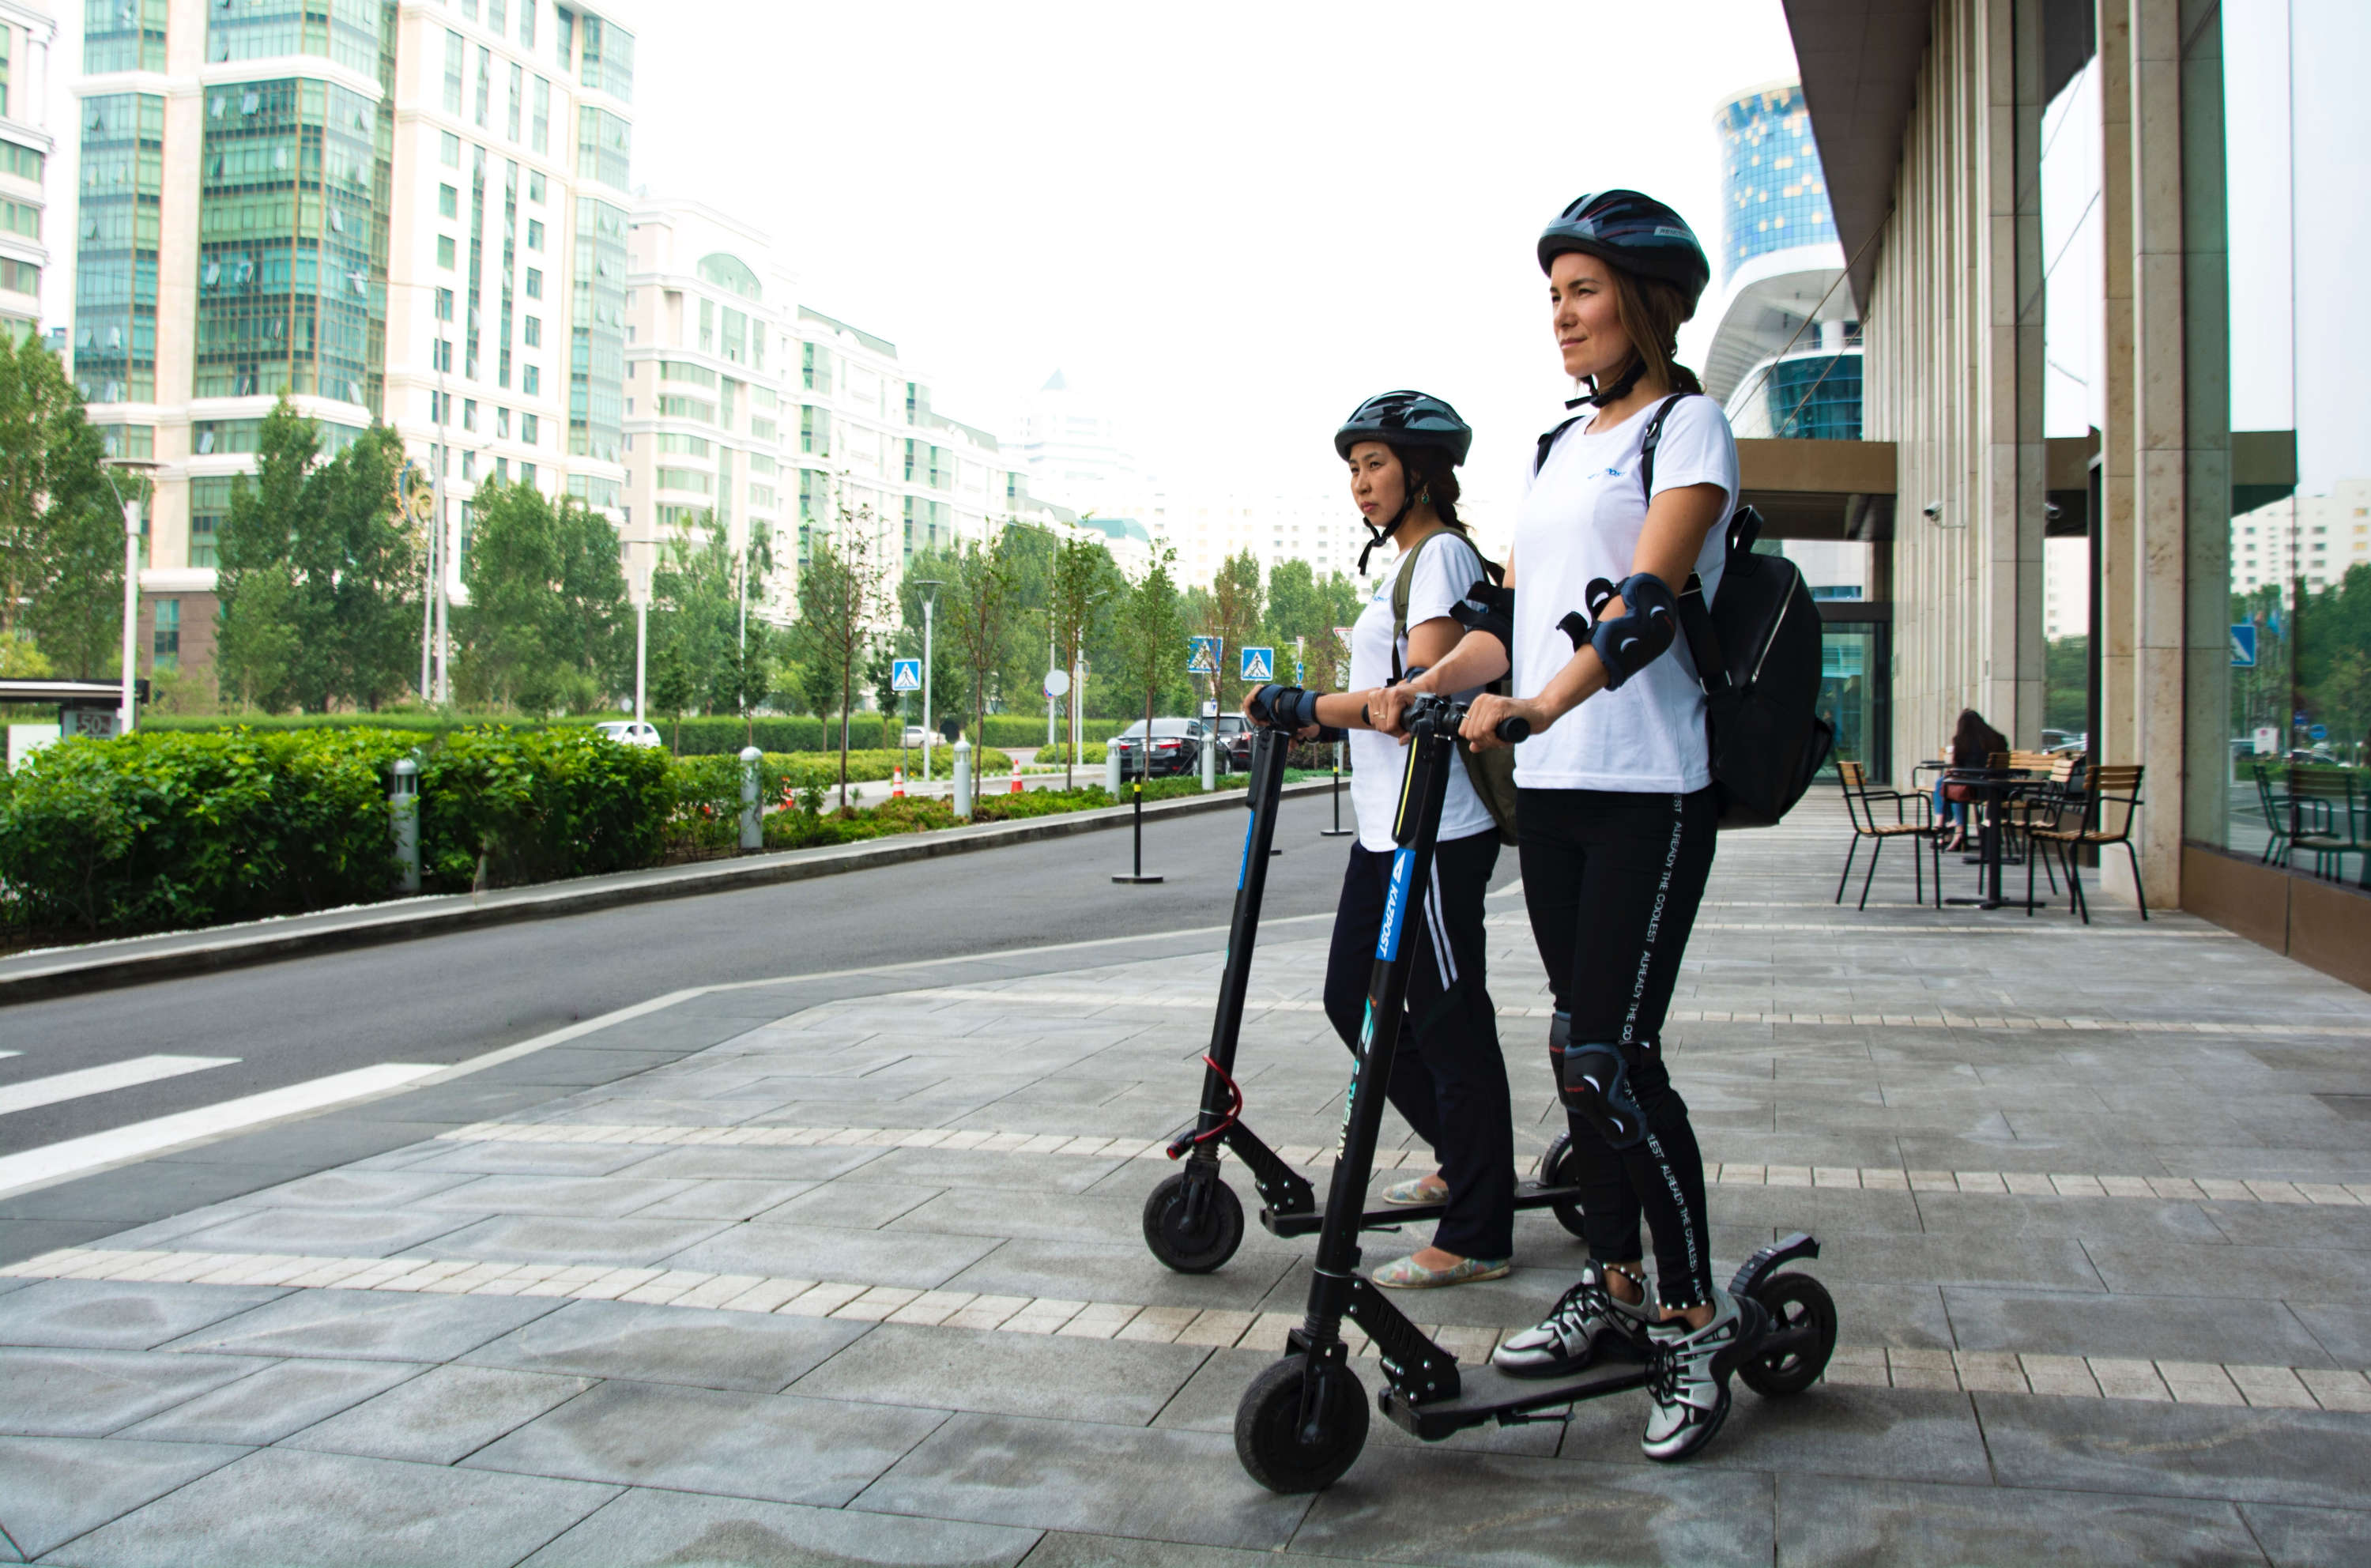 Two women standing on electric scooters in a city environment